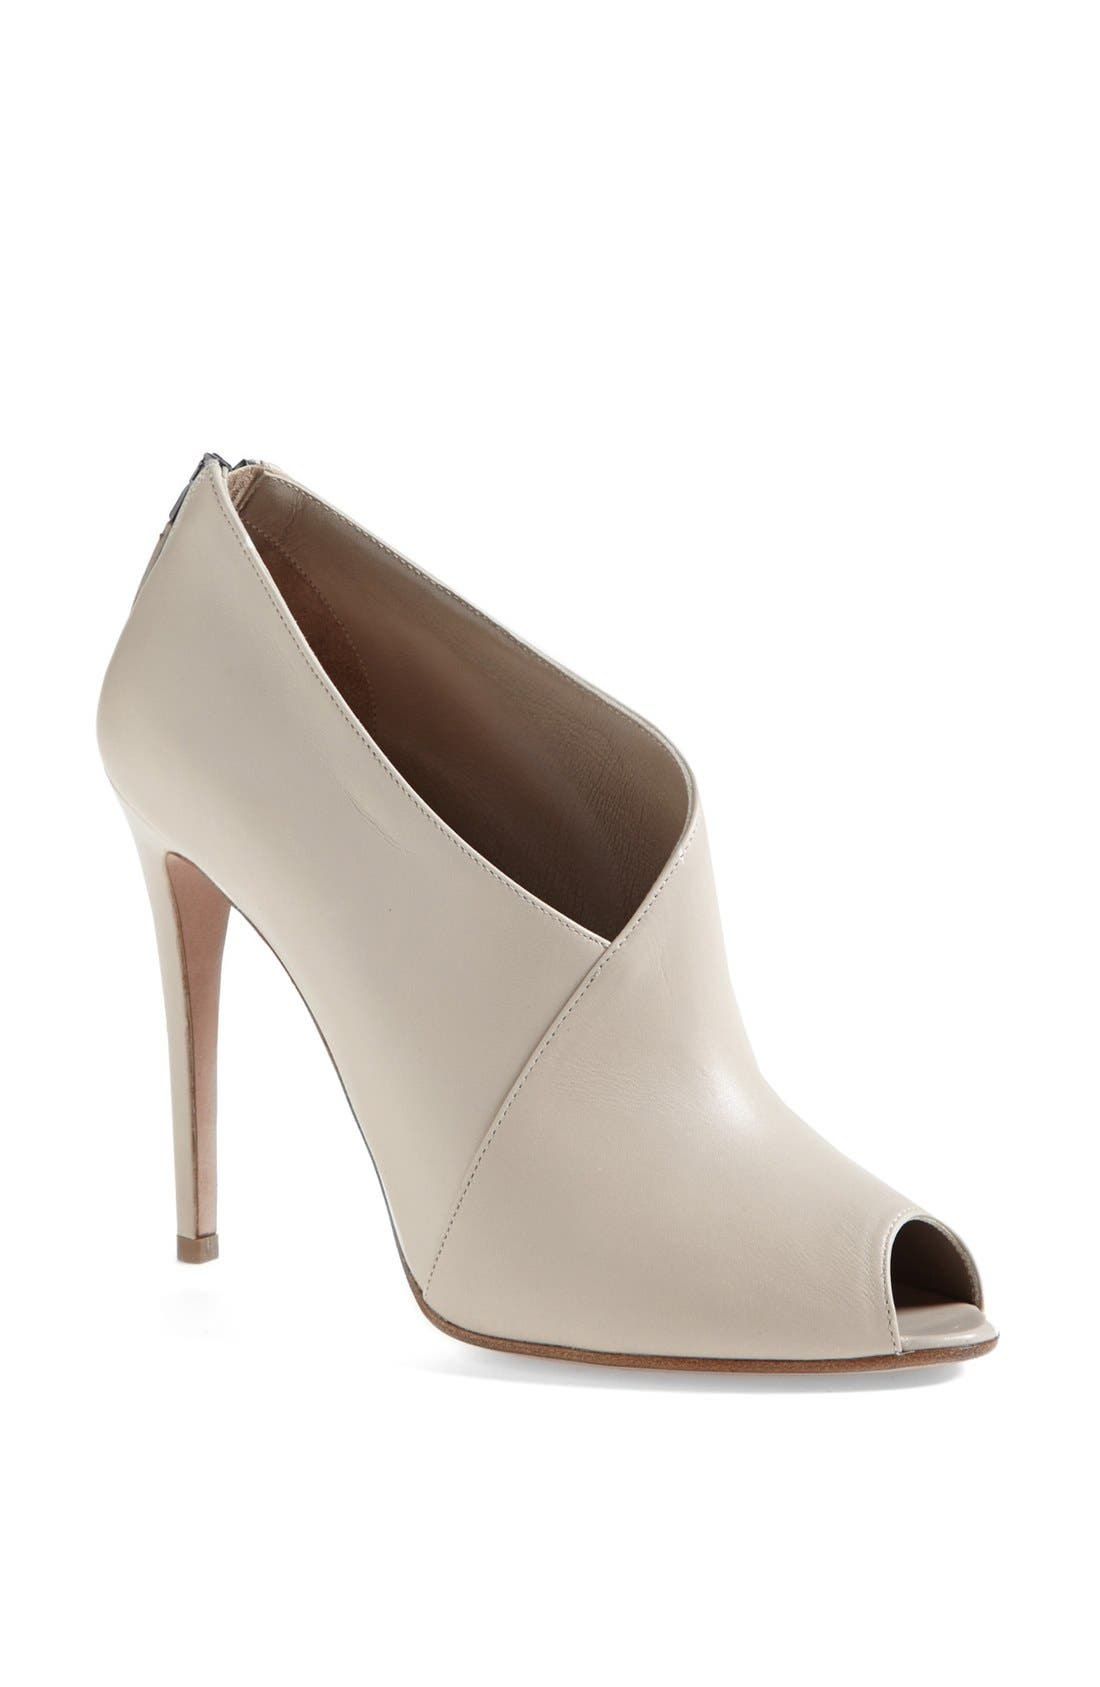 Alternate Image 1 Selected - Prada Peep Toe Bootie